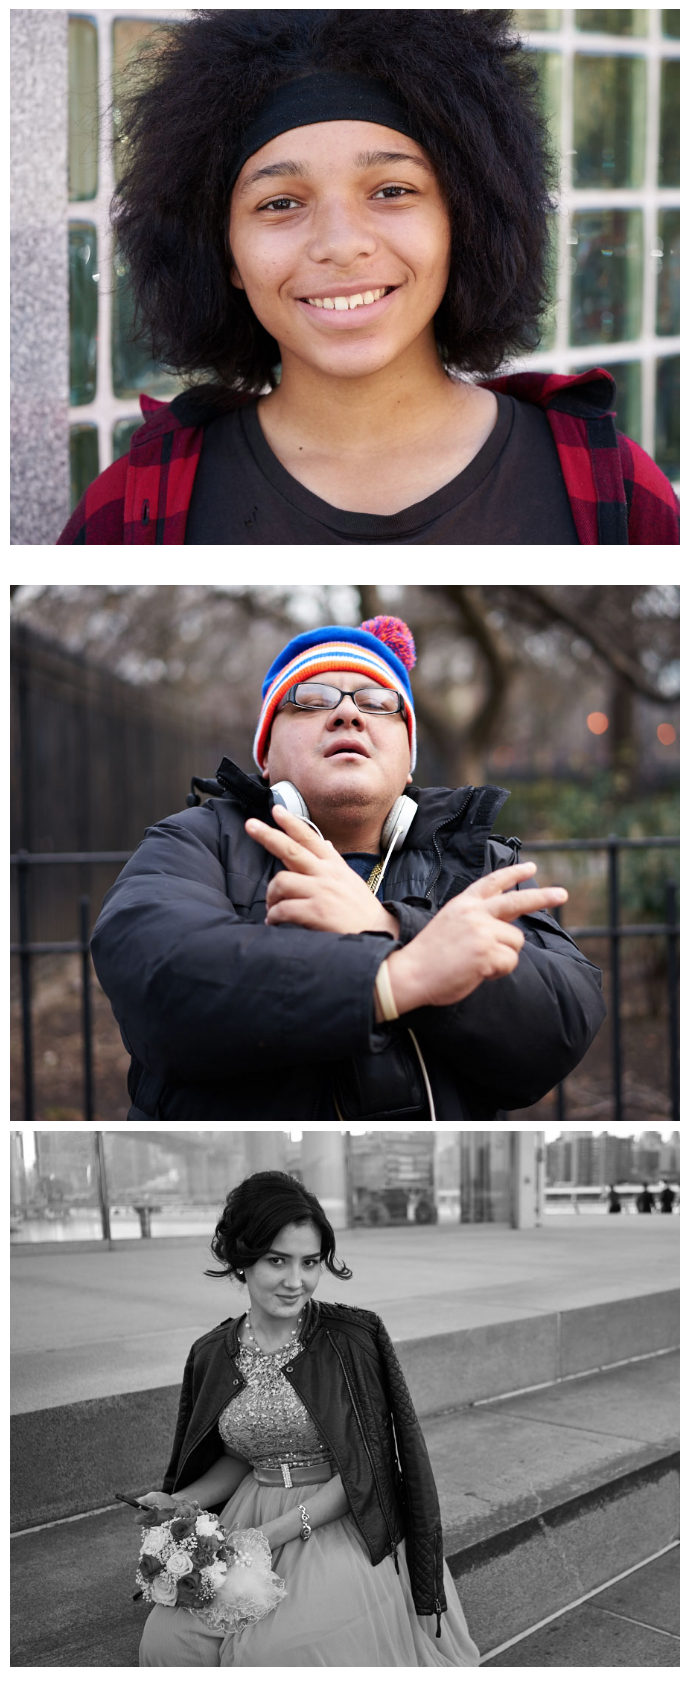 Tutorial: How to Shoot Portraits of Total Strangers